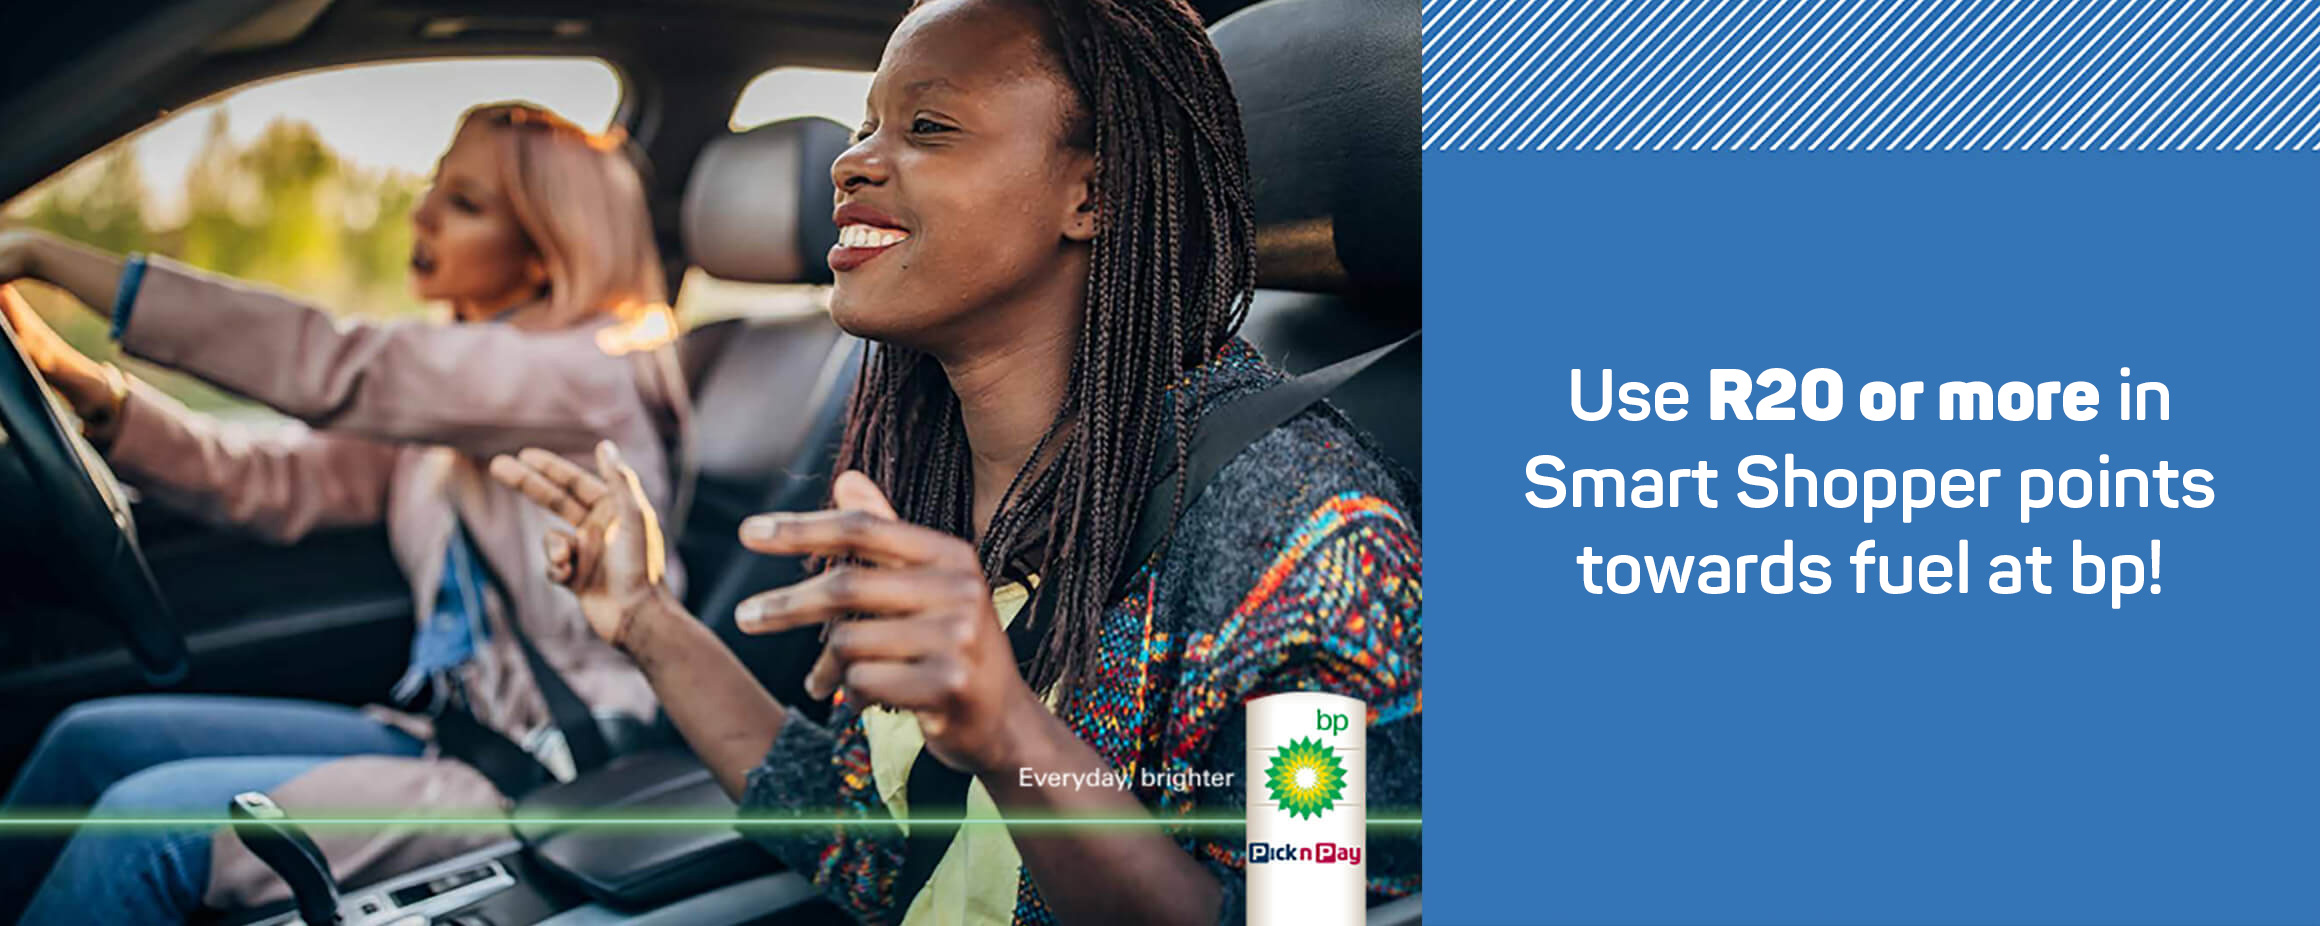 Use R20 or more in Smart Shopper points towards fuel at BP!